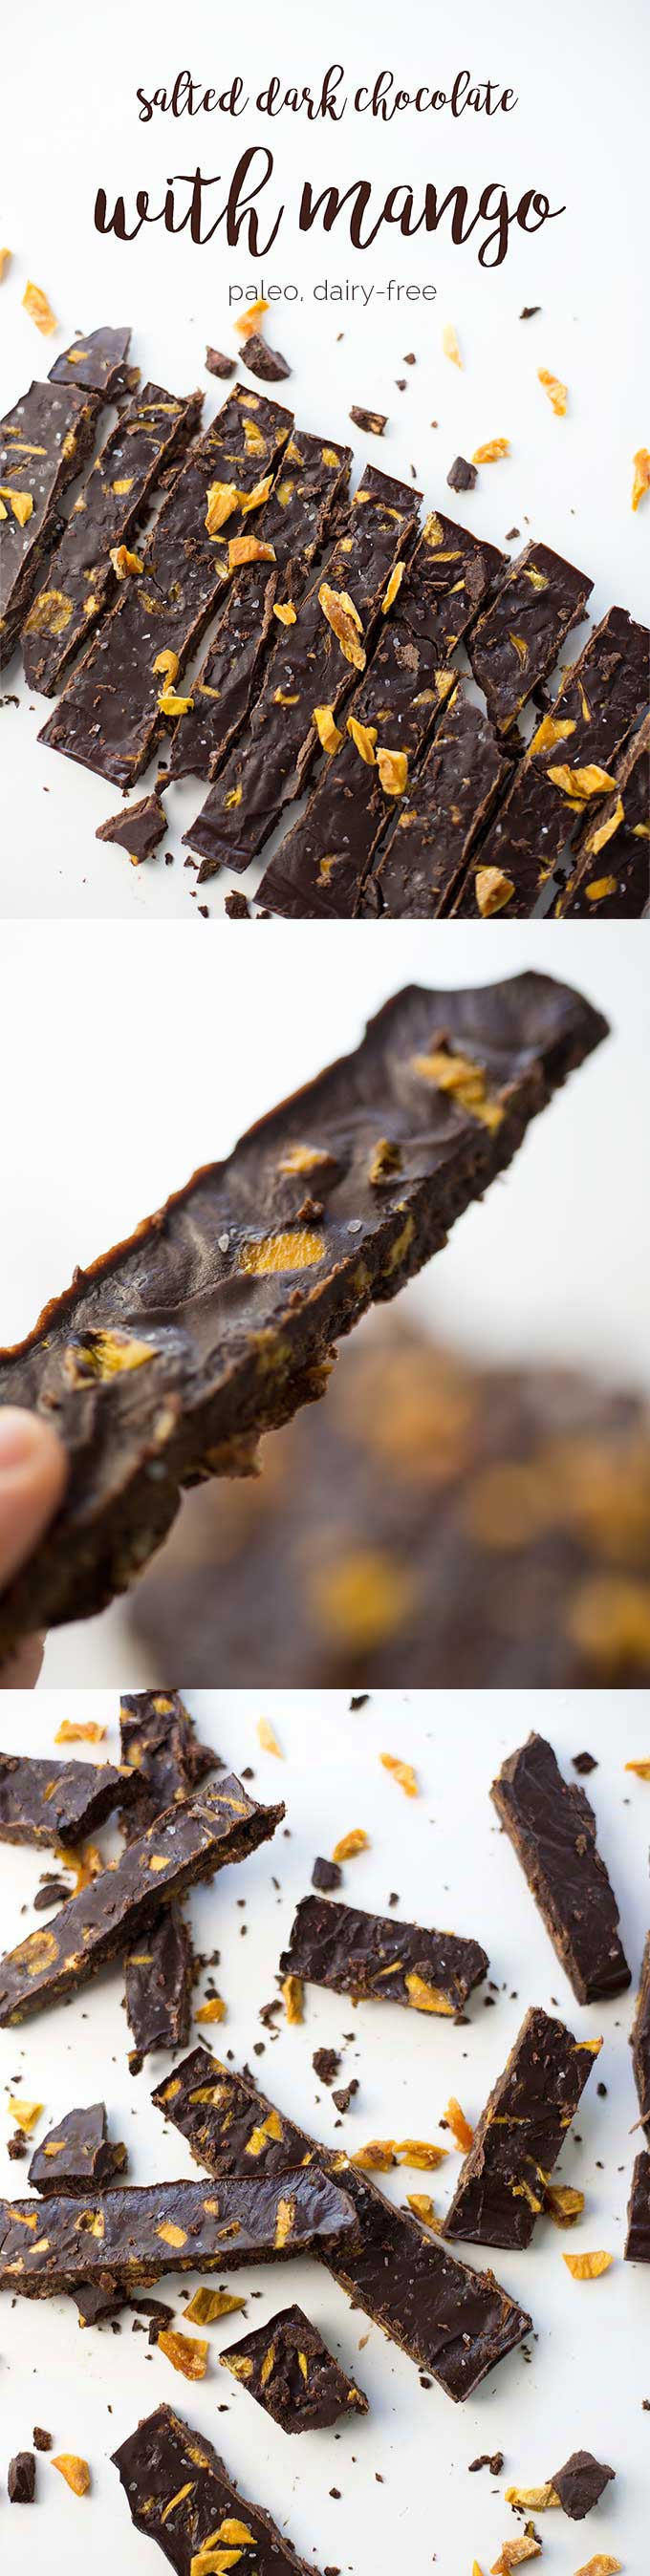 Salted Dark Chocolate with Mango – dairy-free chocolate bursting with chunks of dried mango and sprinkled with sea salt. Just one of many Paleo Dark Chocolate Treats!